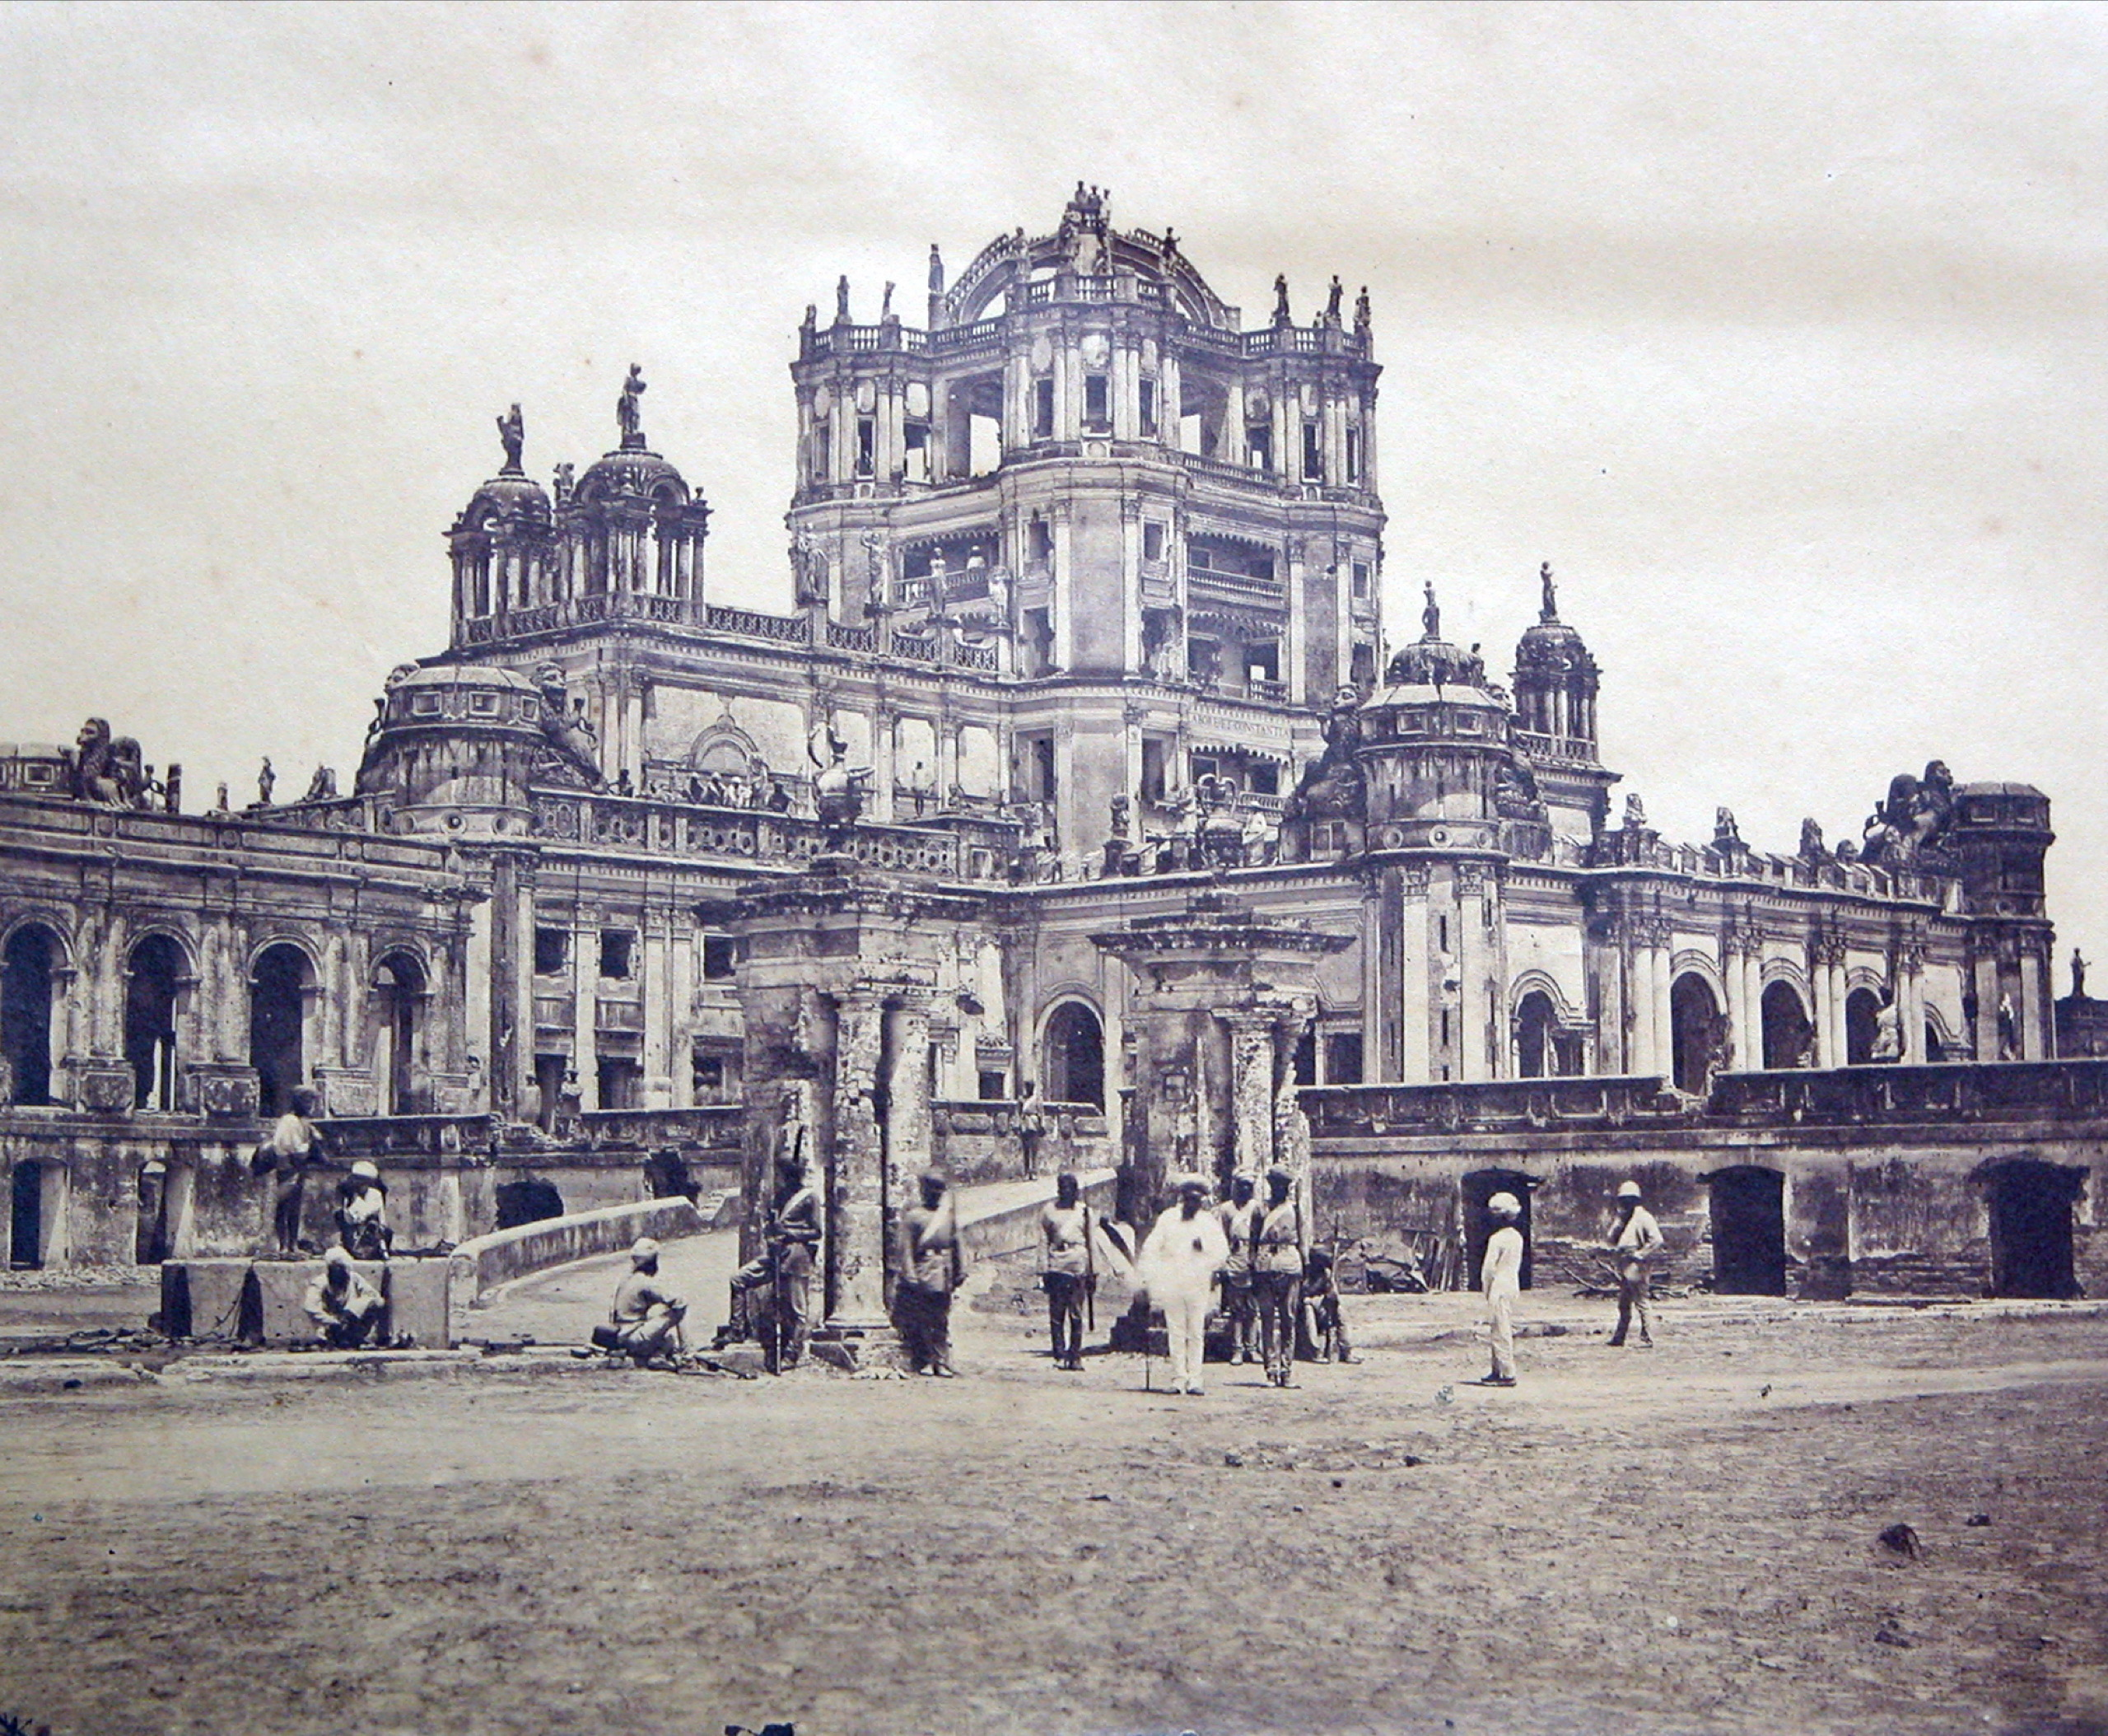 http://upload.wikimedia.org/wikipedia/commons/4/48/Lucknow_-_La_Martiniere_(1858).jpg